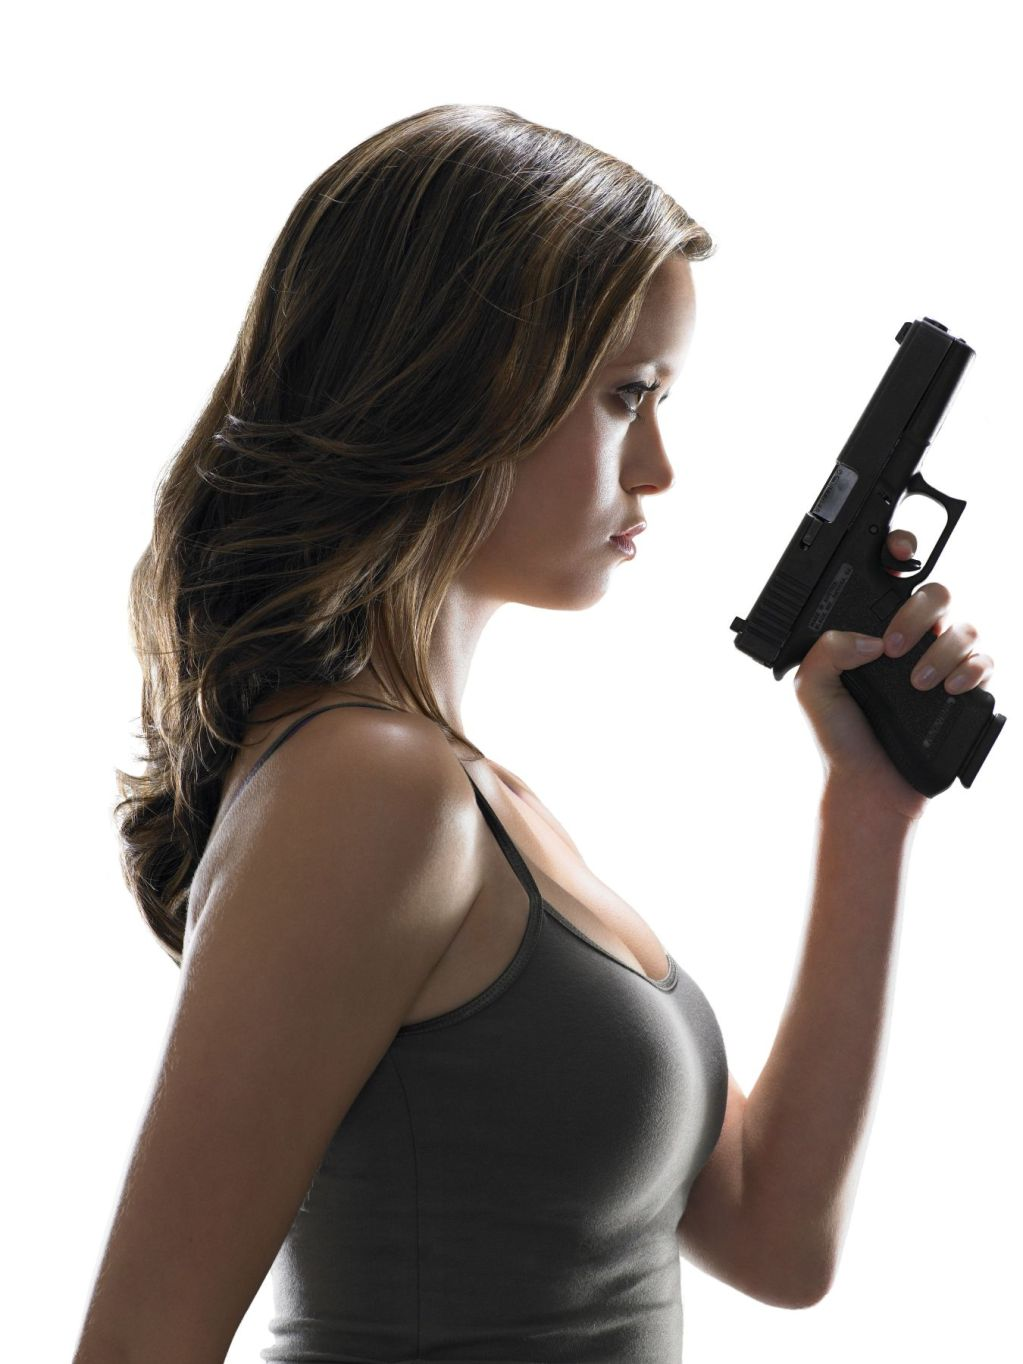 61979_summer_glau_-_unknown_photoshoot0001_122_1140lo.jpg